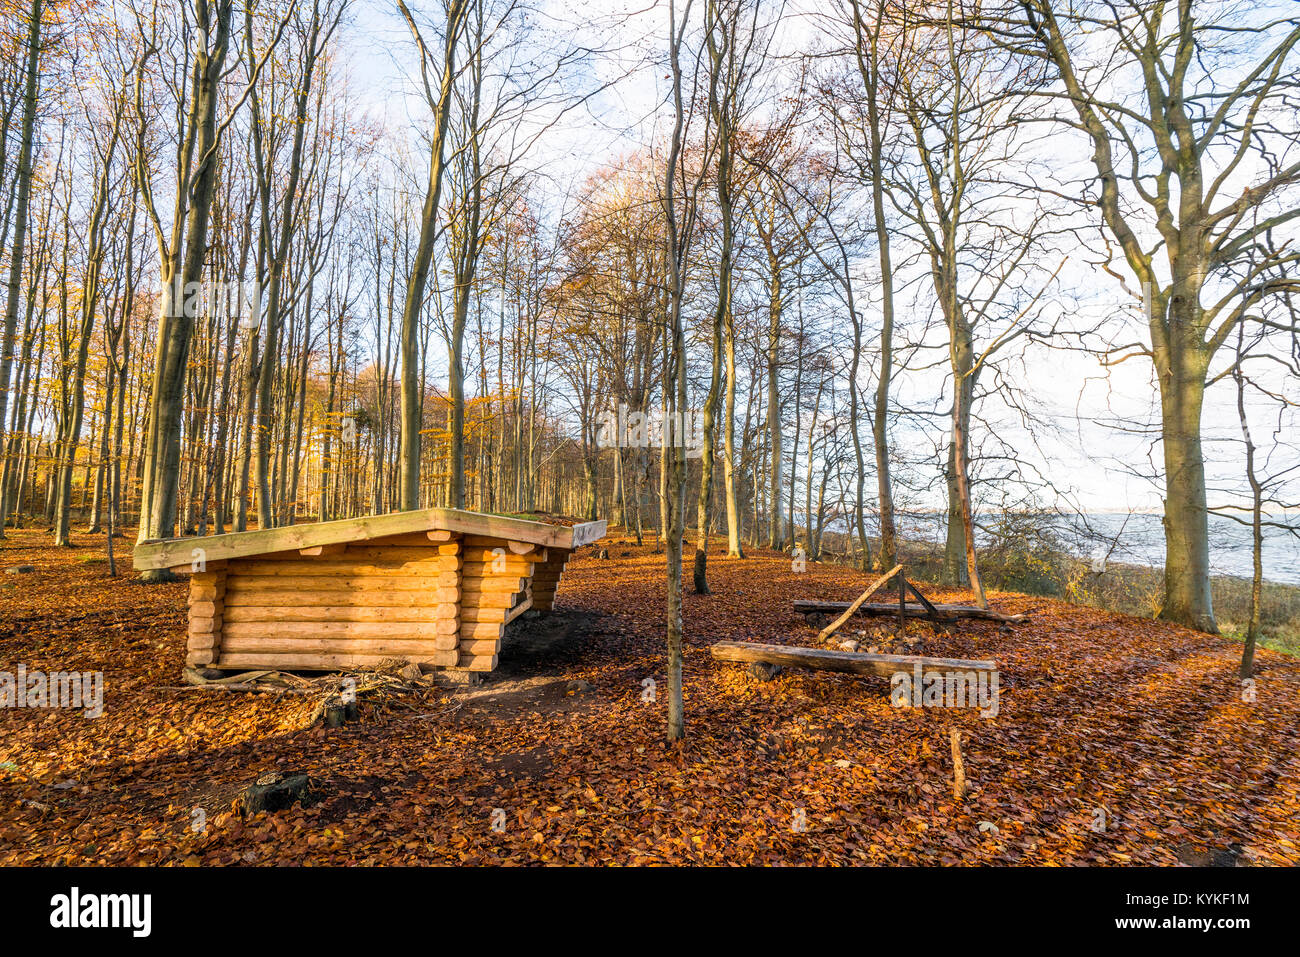 Shelter in the outdoors in a forest with tall trees in the autumn - Stock Image